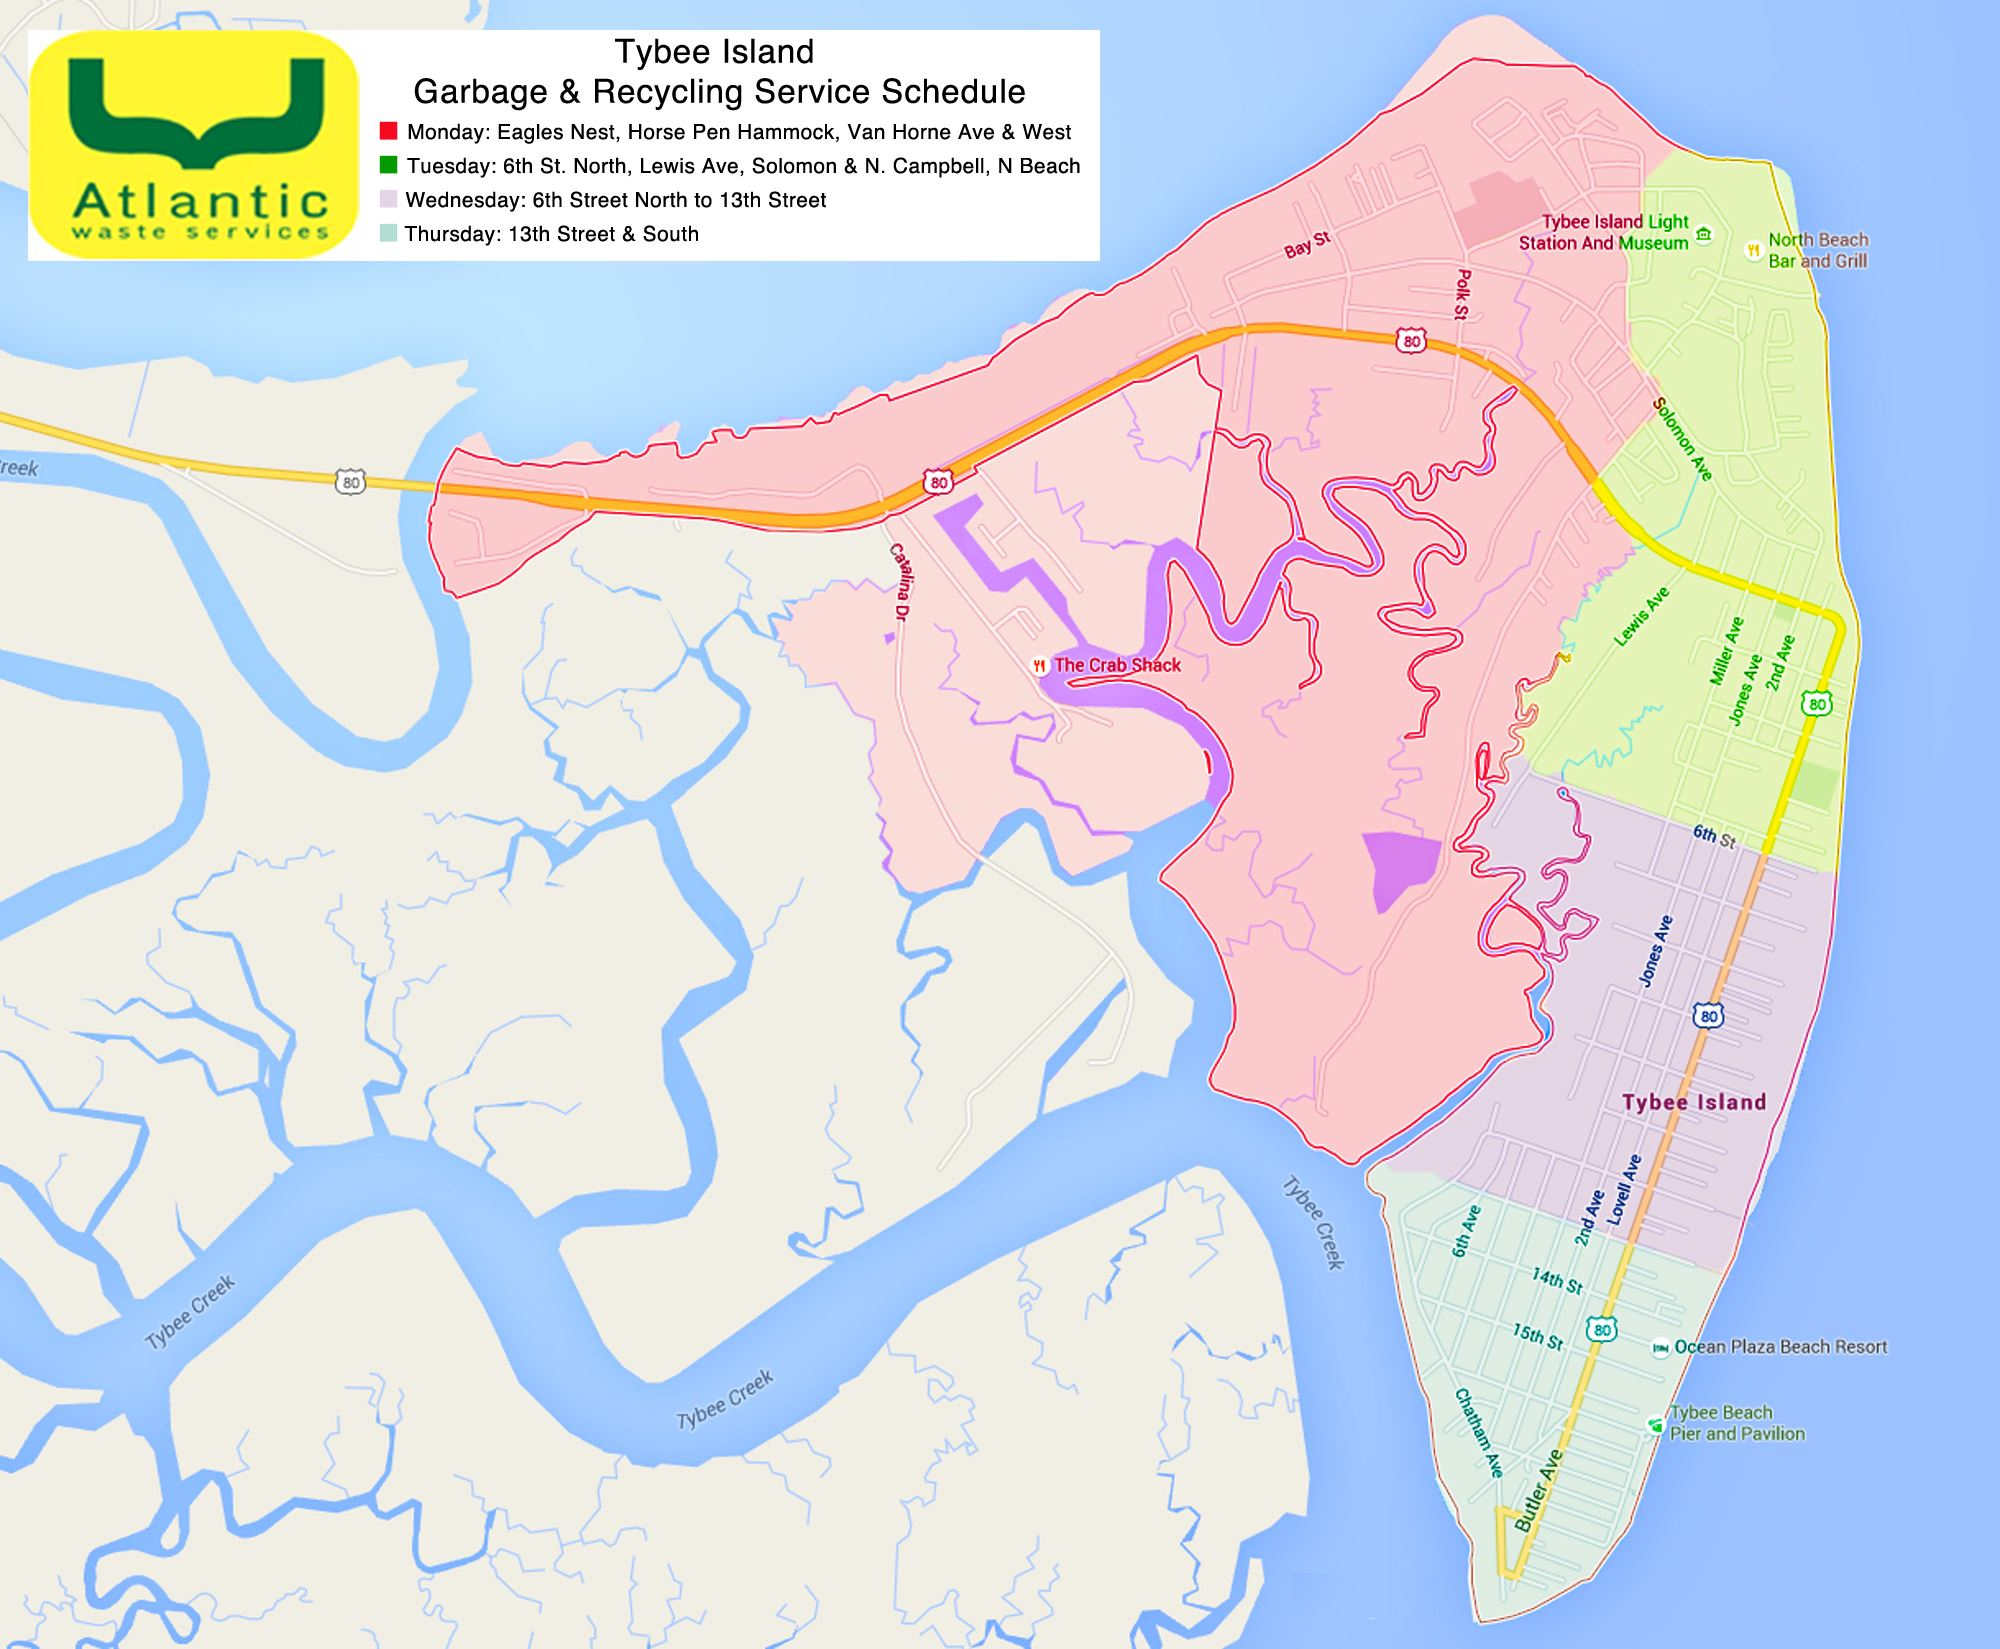 Tybee Recycling Map